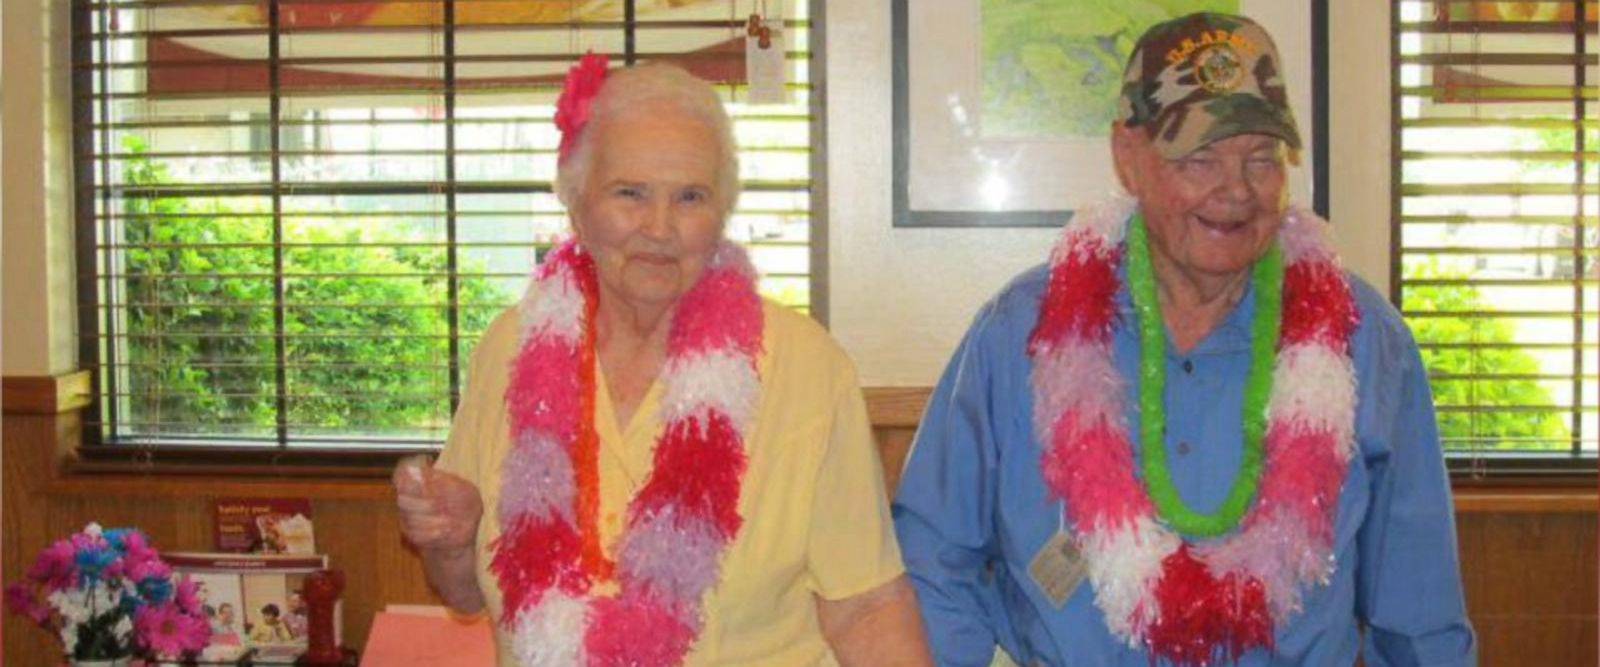 Robert and Marie Nowell had an early anniversary party with their family on Aug. 12 in Missouri.